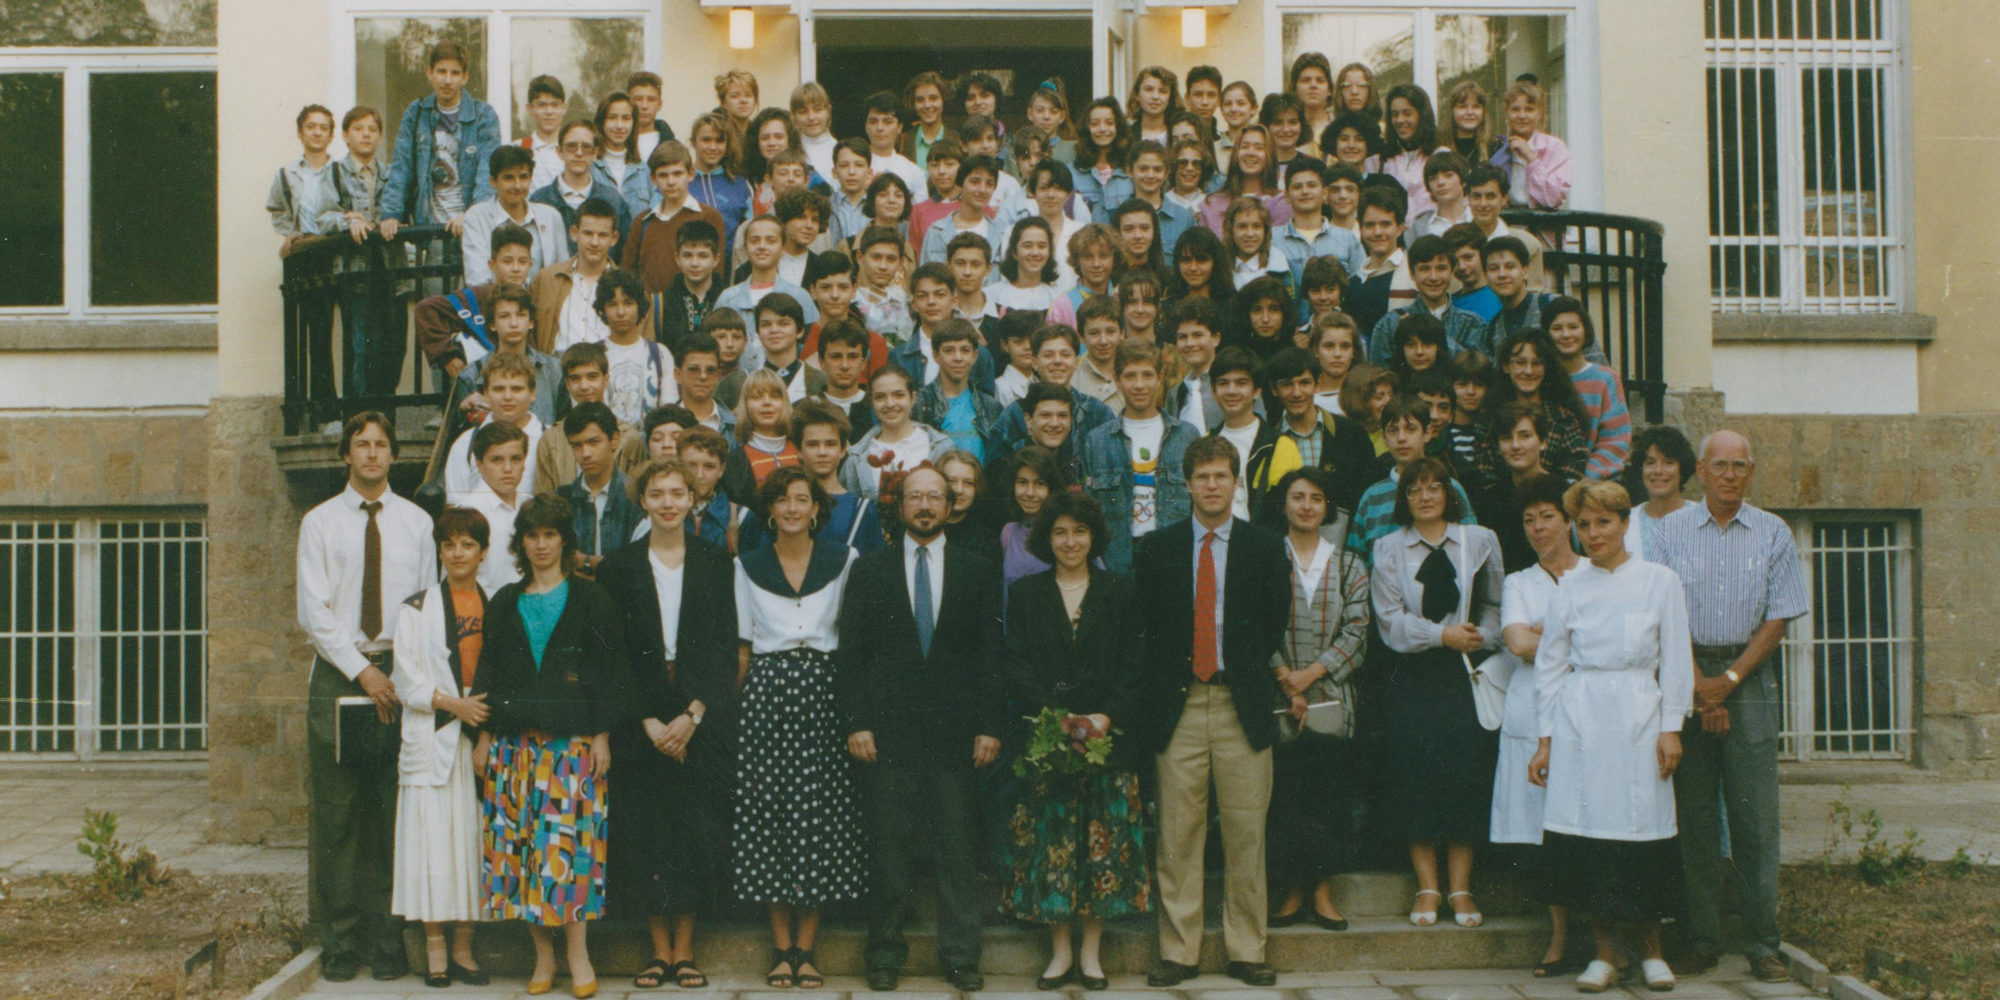 1997-and-faculty-in-1992-croppedjpg-1